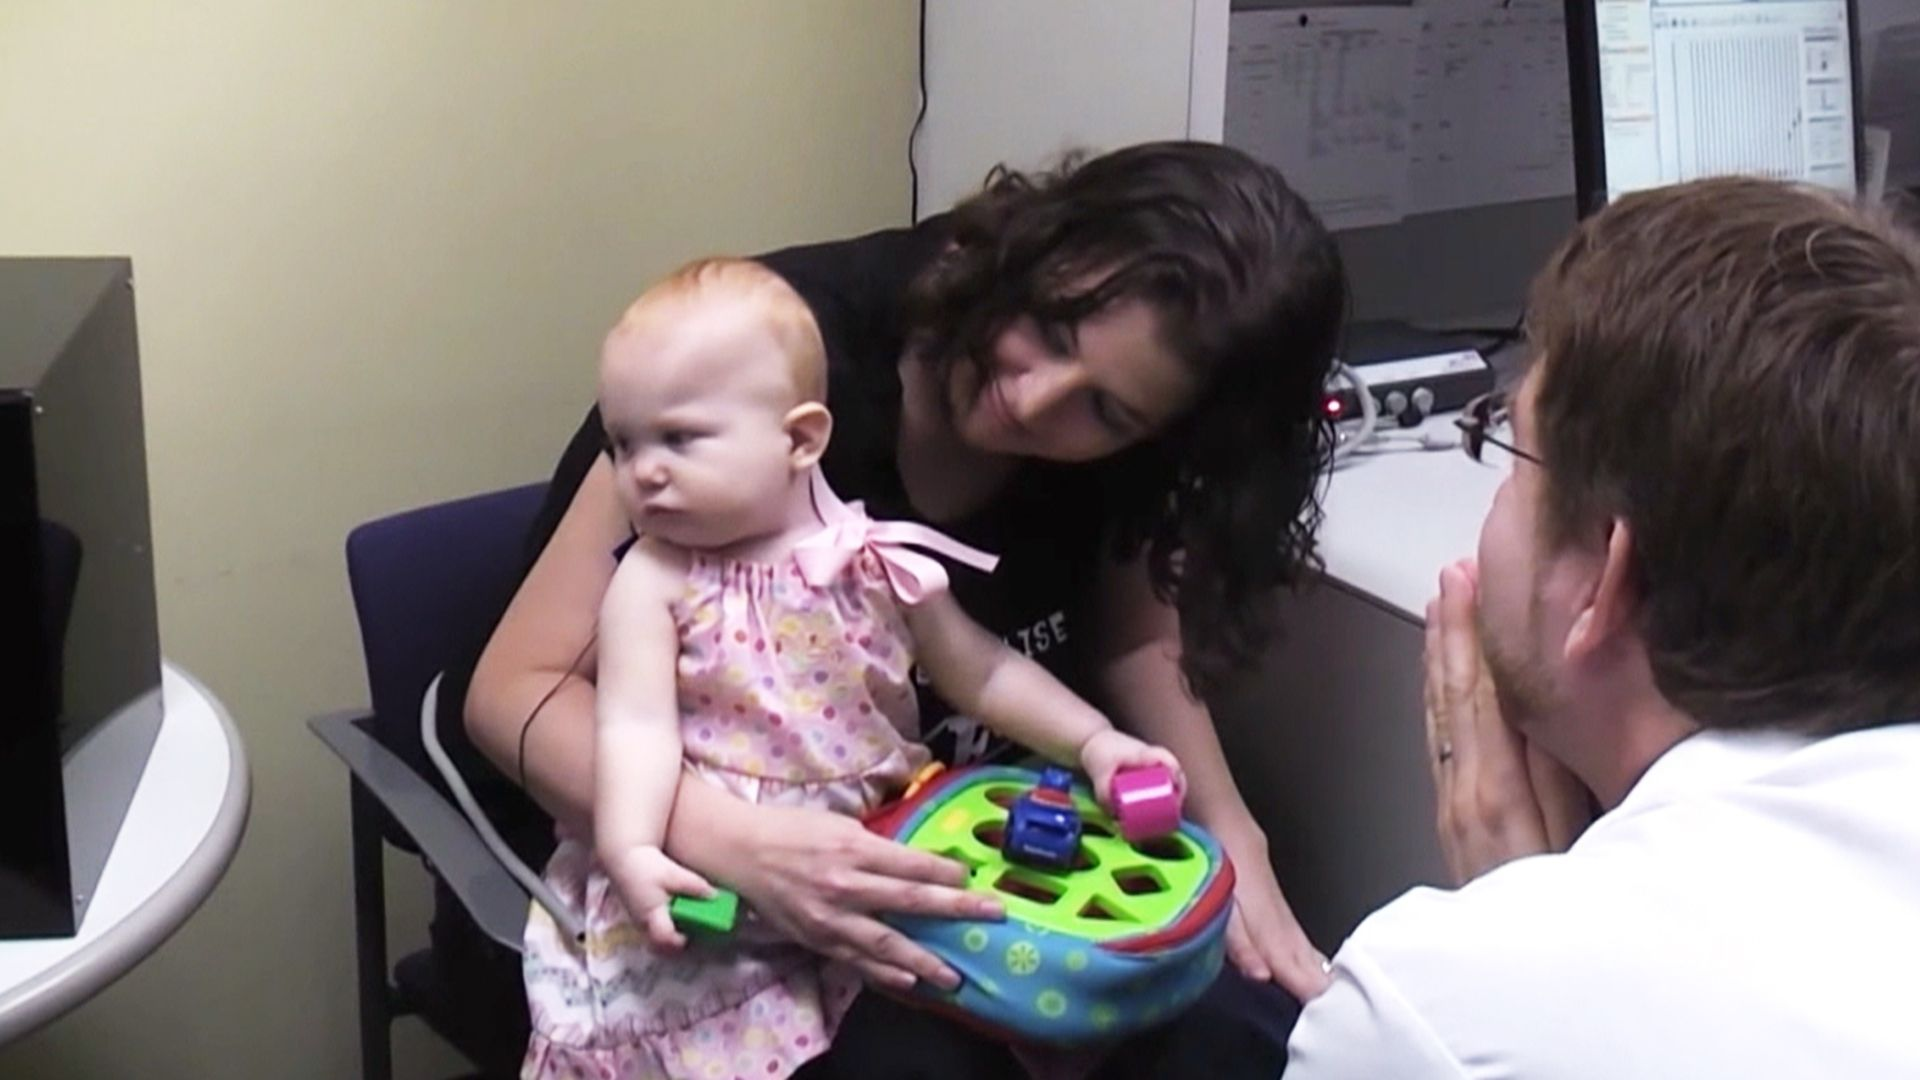 Brain implant allows baby girl, born deaf, to hear for the first time